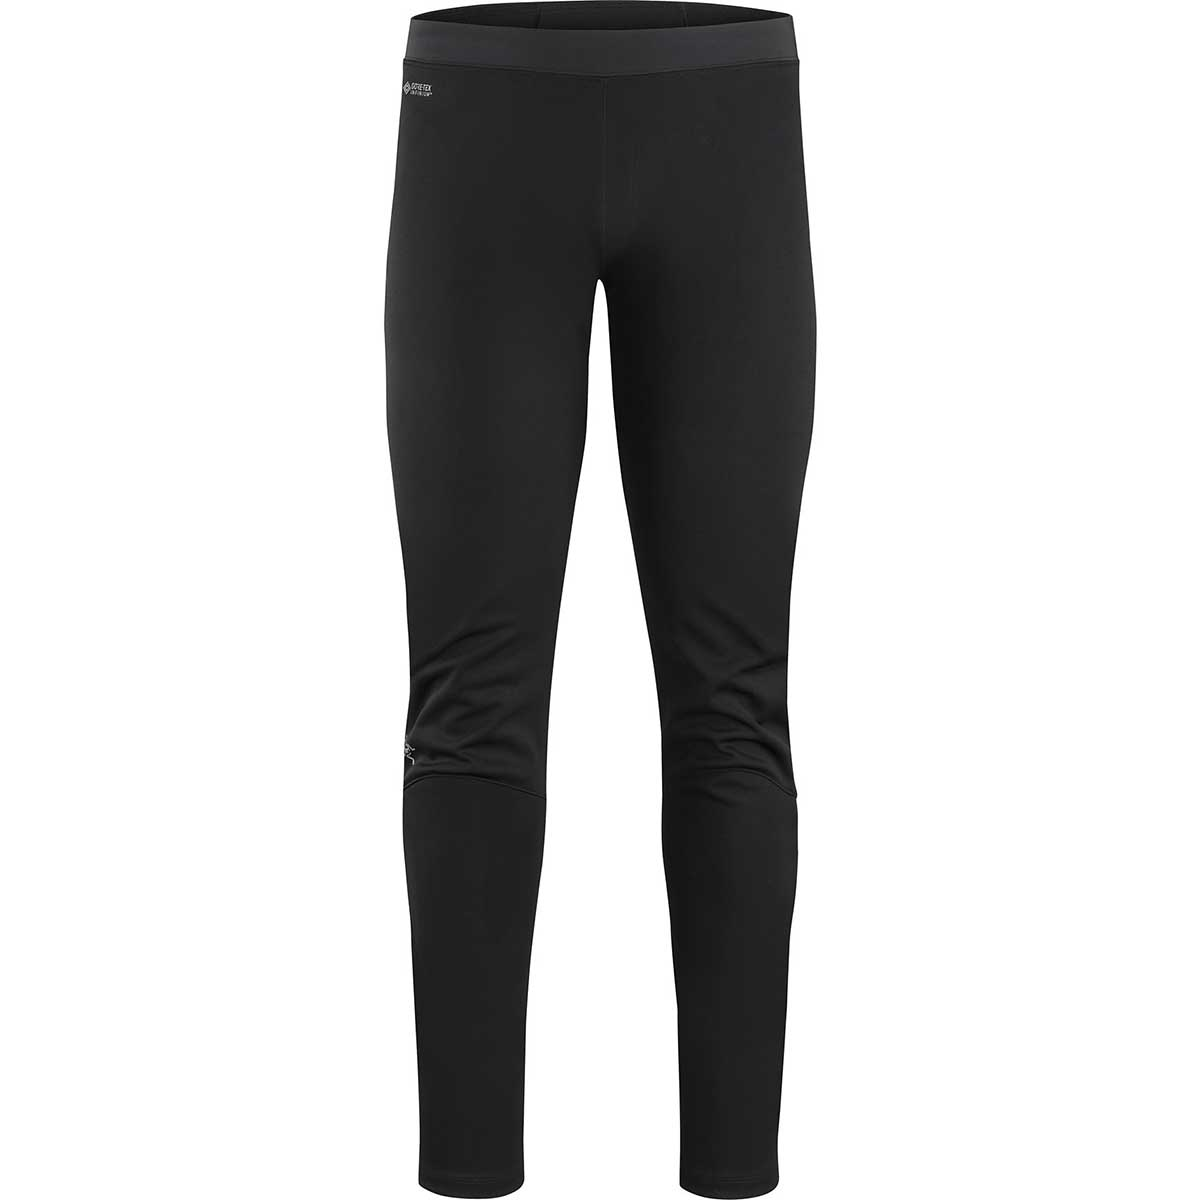 Arcteryx men's Trino Tight in Black and Black front view